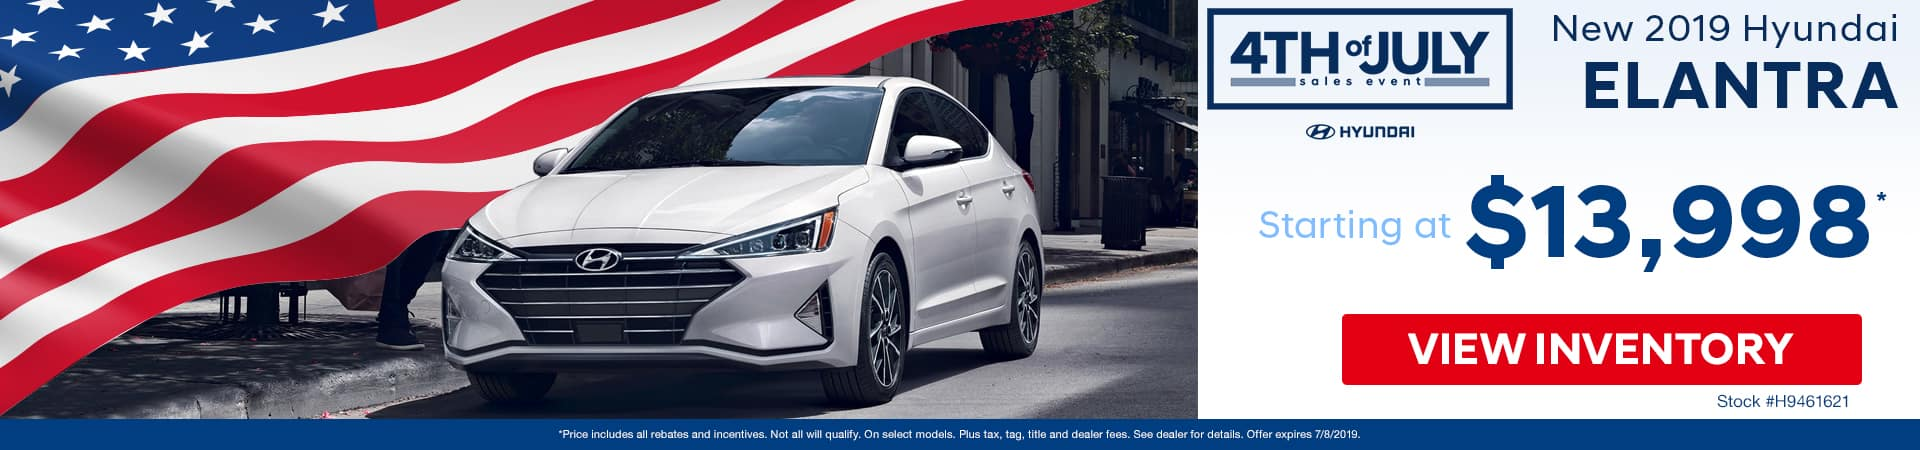 Get a new 2019 Hyundai Elantra for just $13,998 in Murfreesboro TN